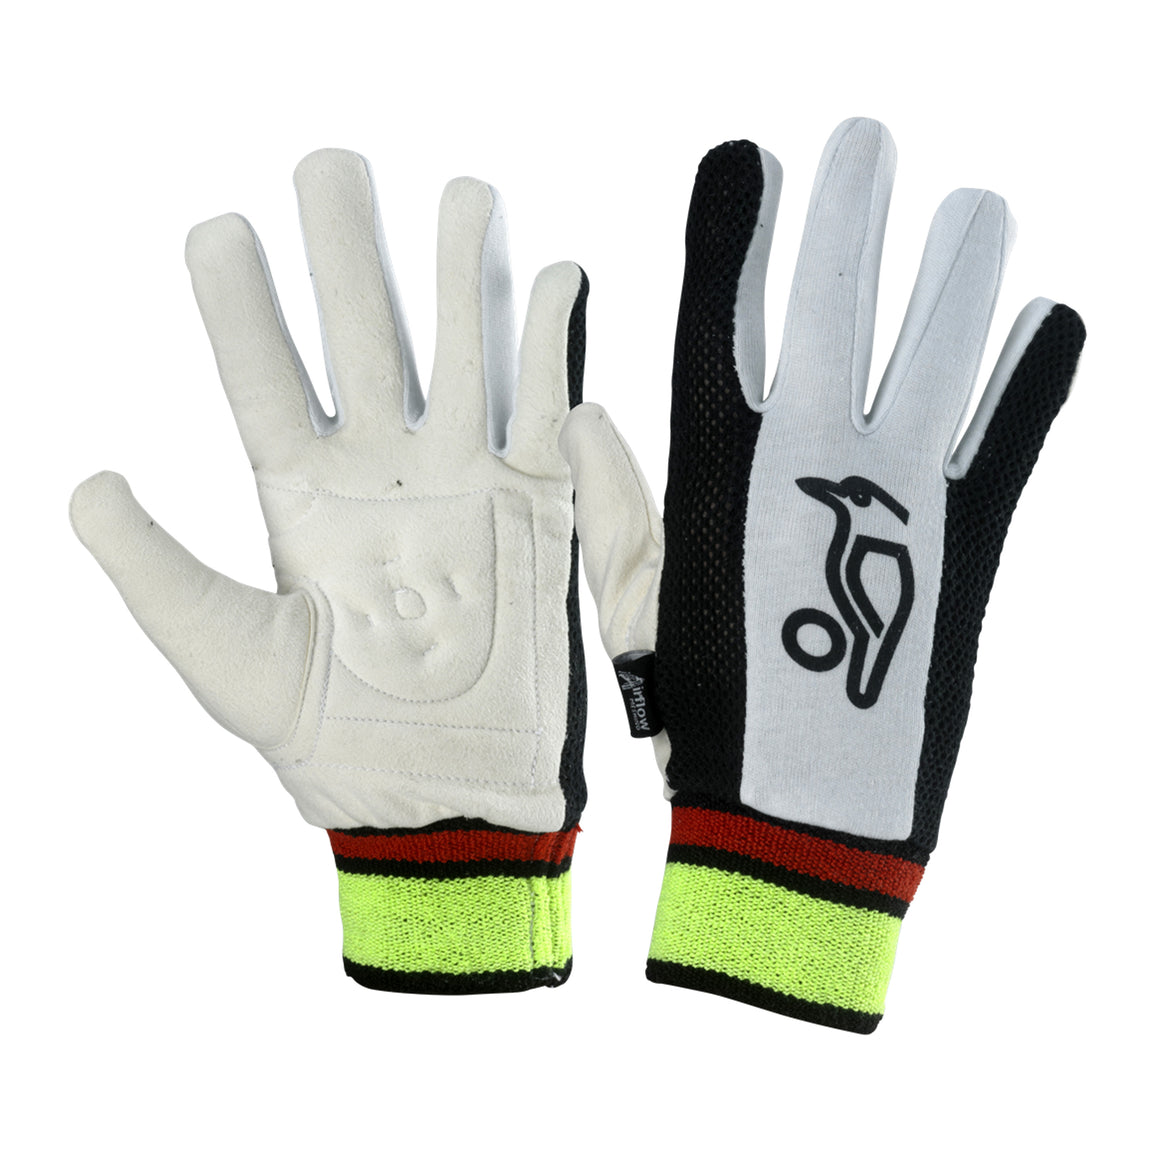 Padded Chamois Inner Gloves for Kids in White & Black